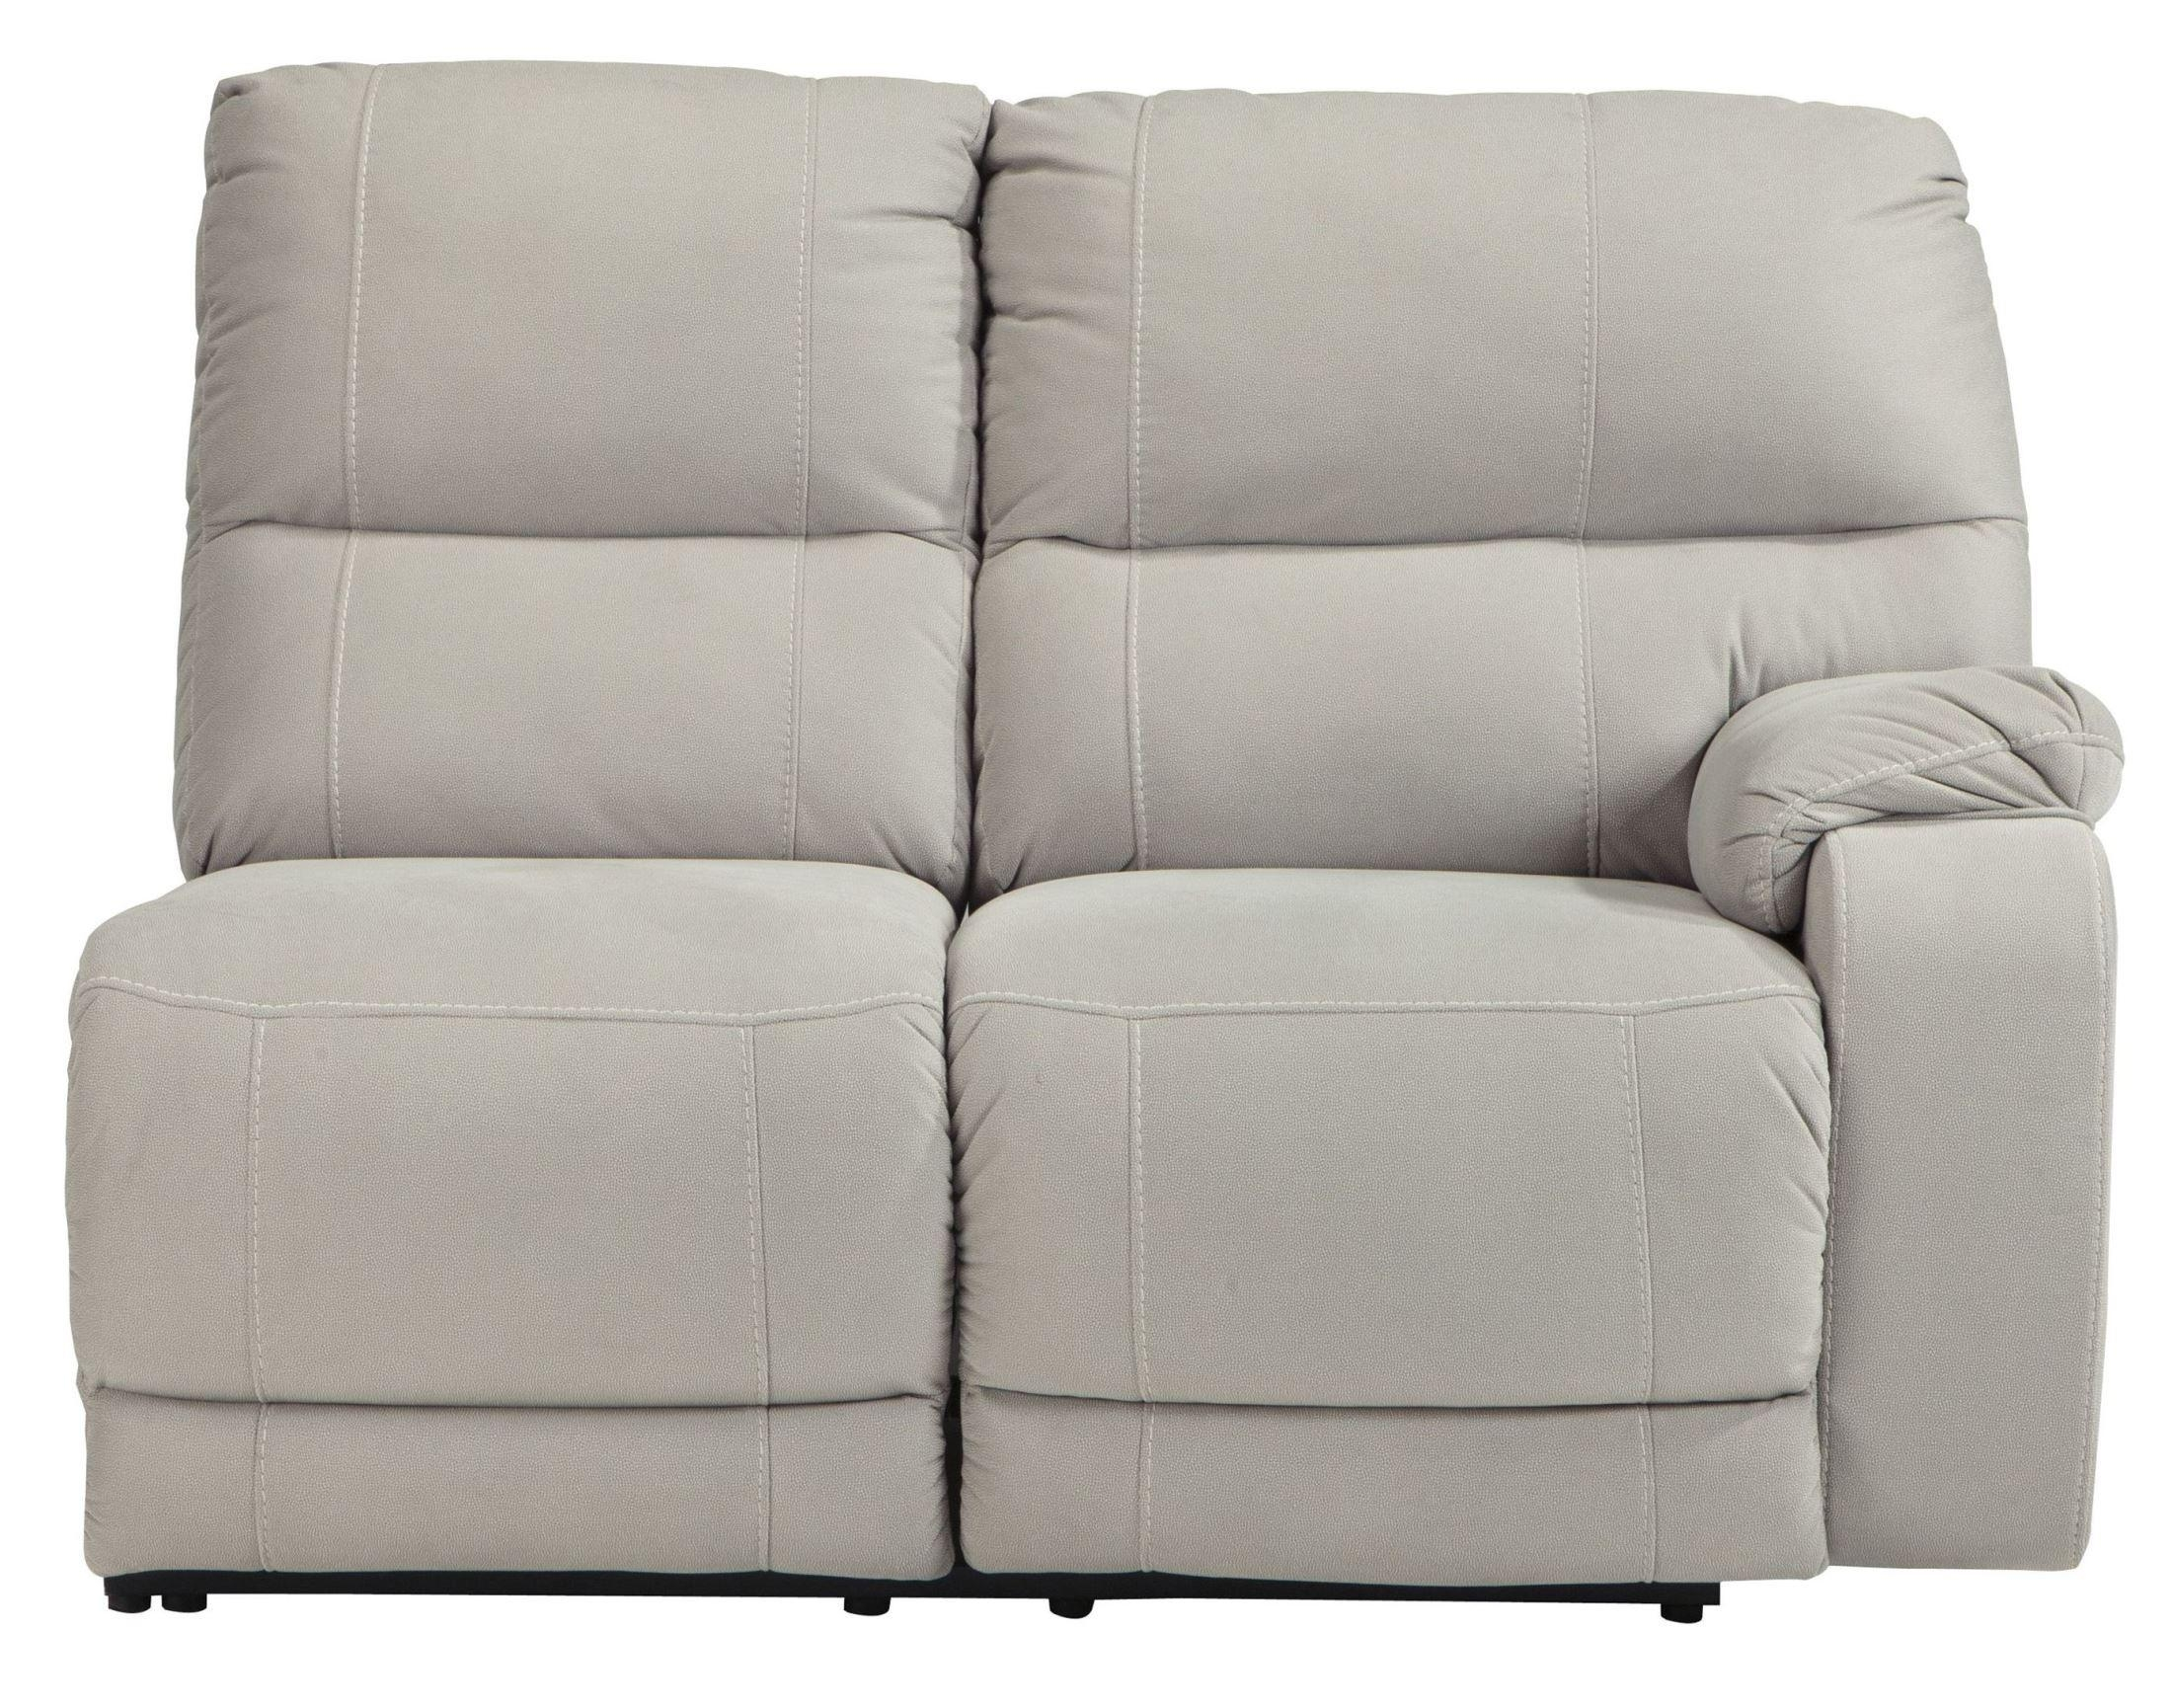 carlyle sofa beds outlet english designs 20 inspirations ideas